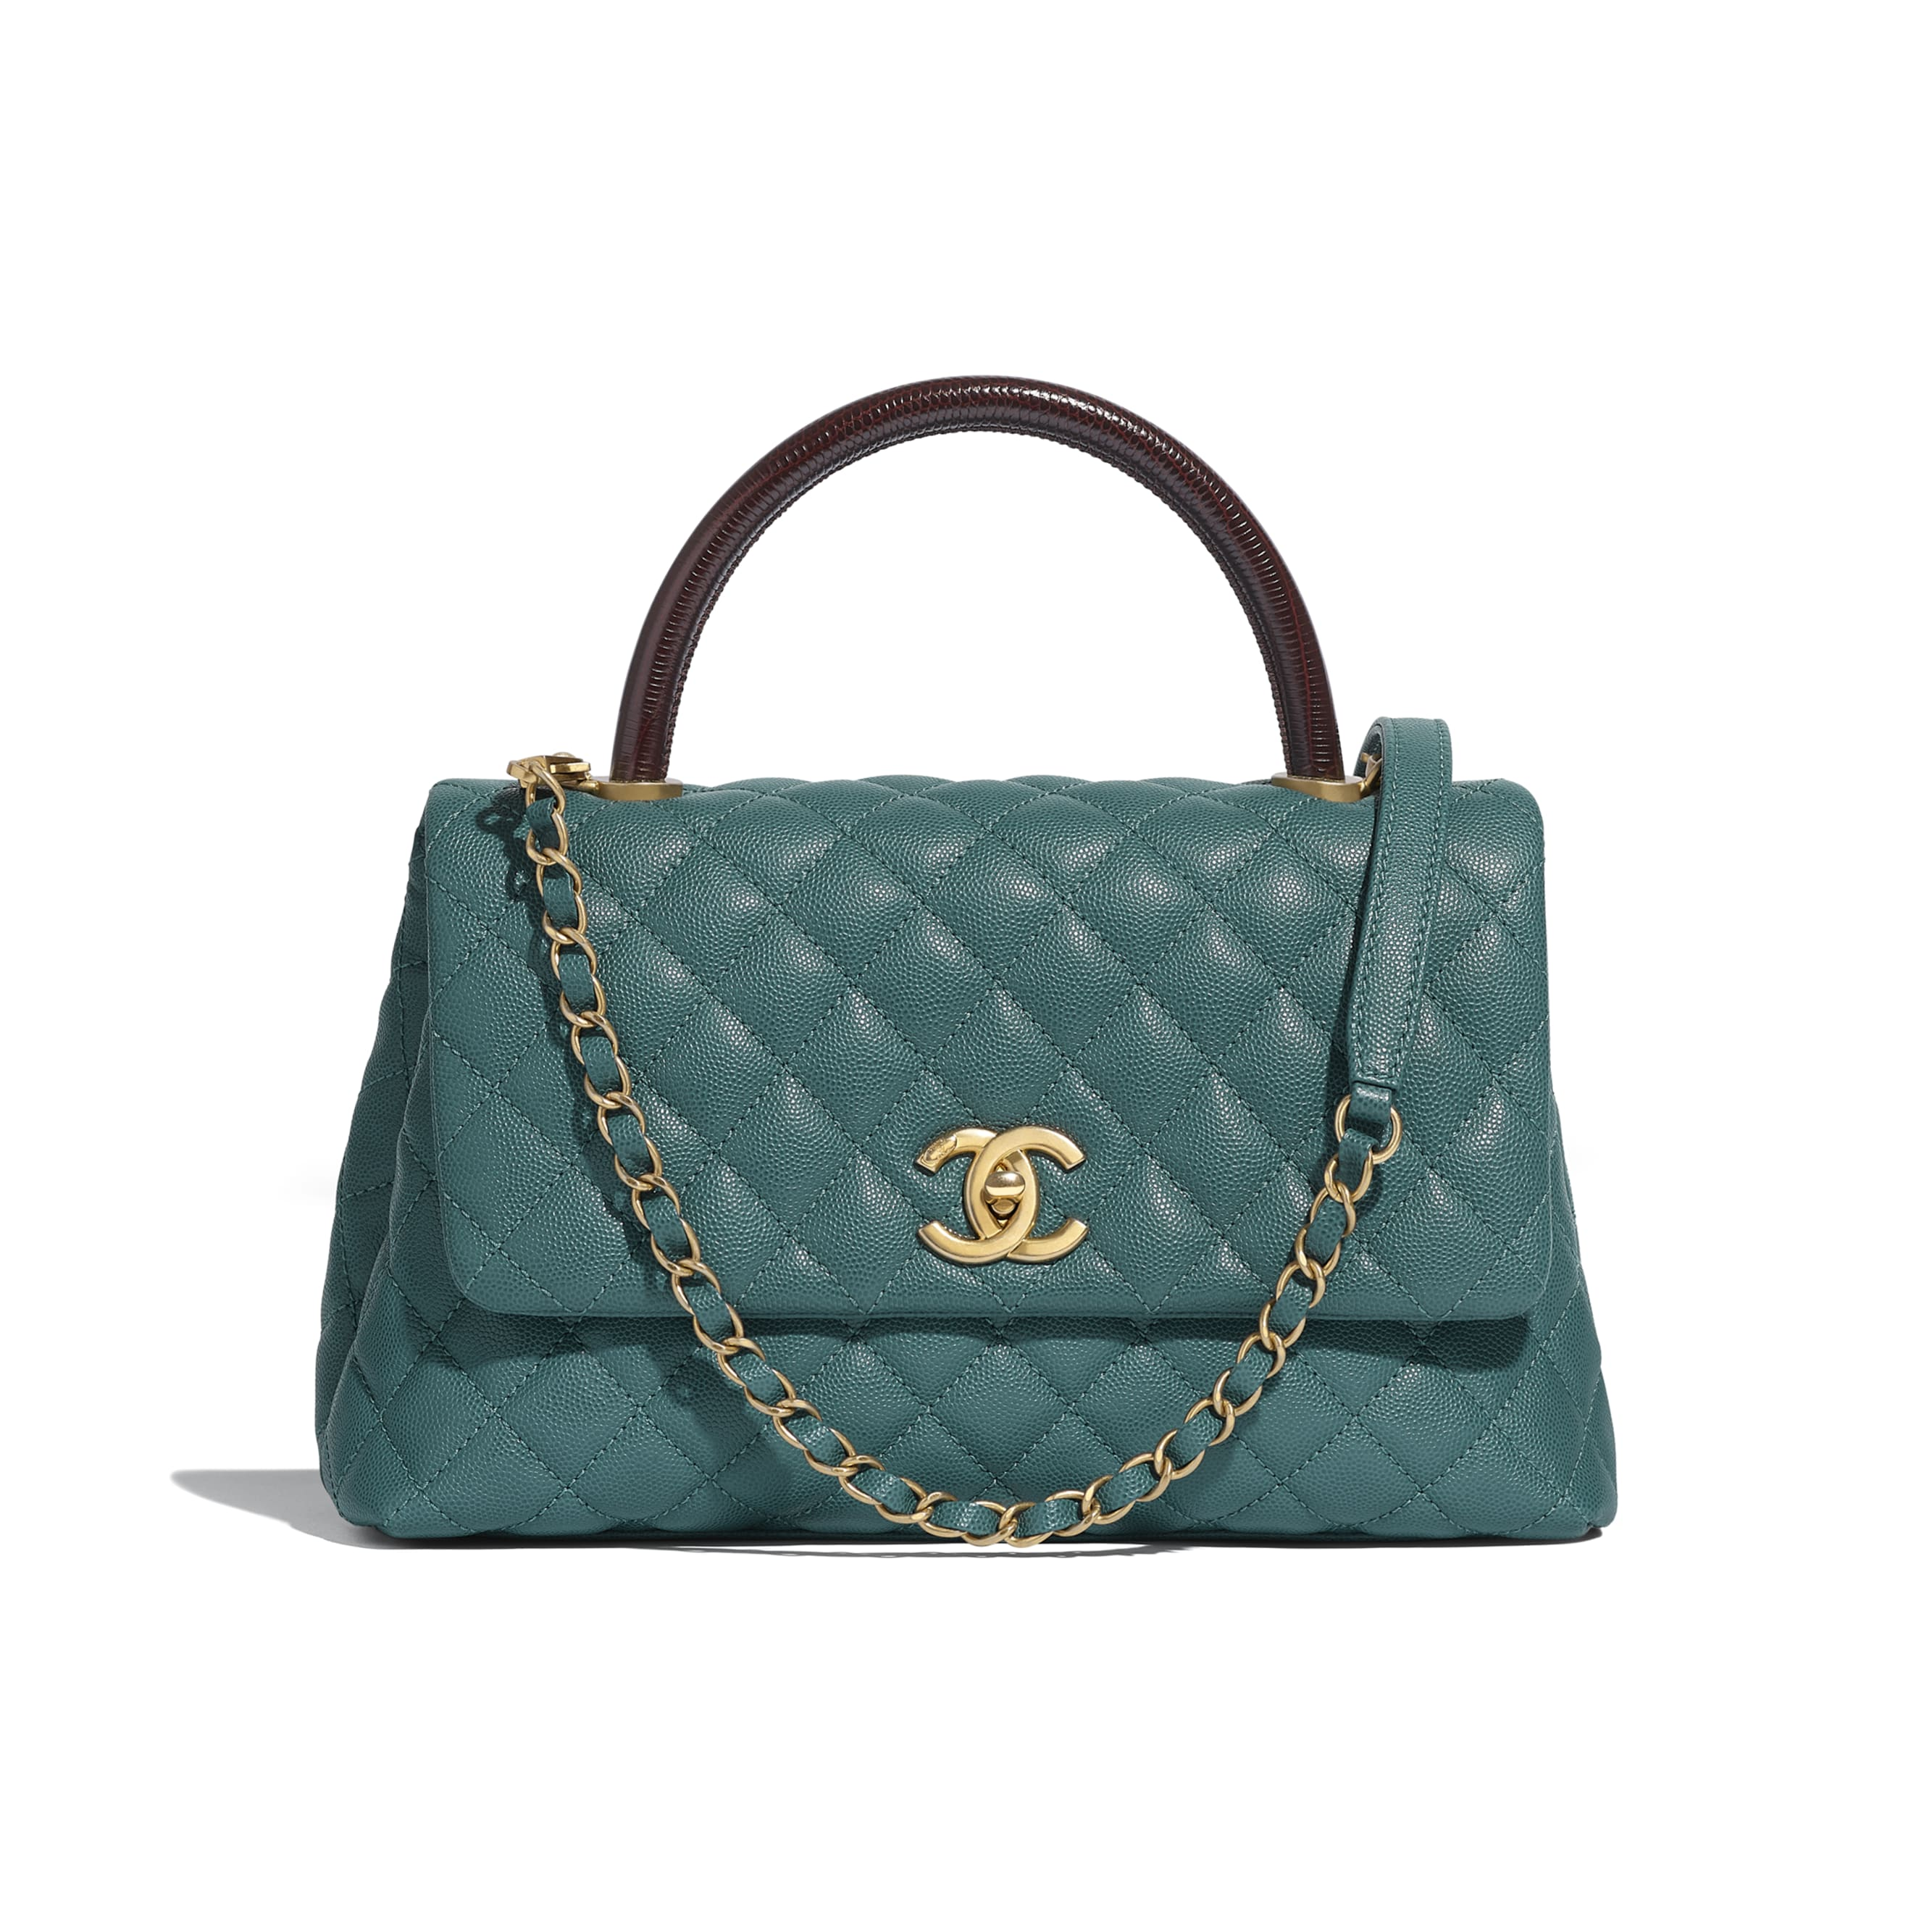 Flap Bag with Top Handle - Turquoise & Burgundy - Grained Calfskin, Lizard Embossed Calfskin & Gold-Tone Metal - Default view - see standard sized version